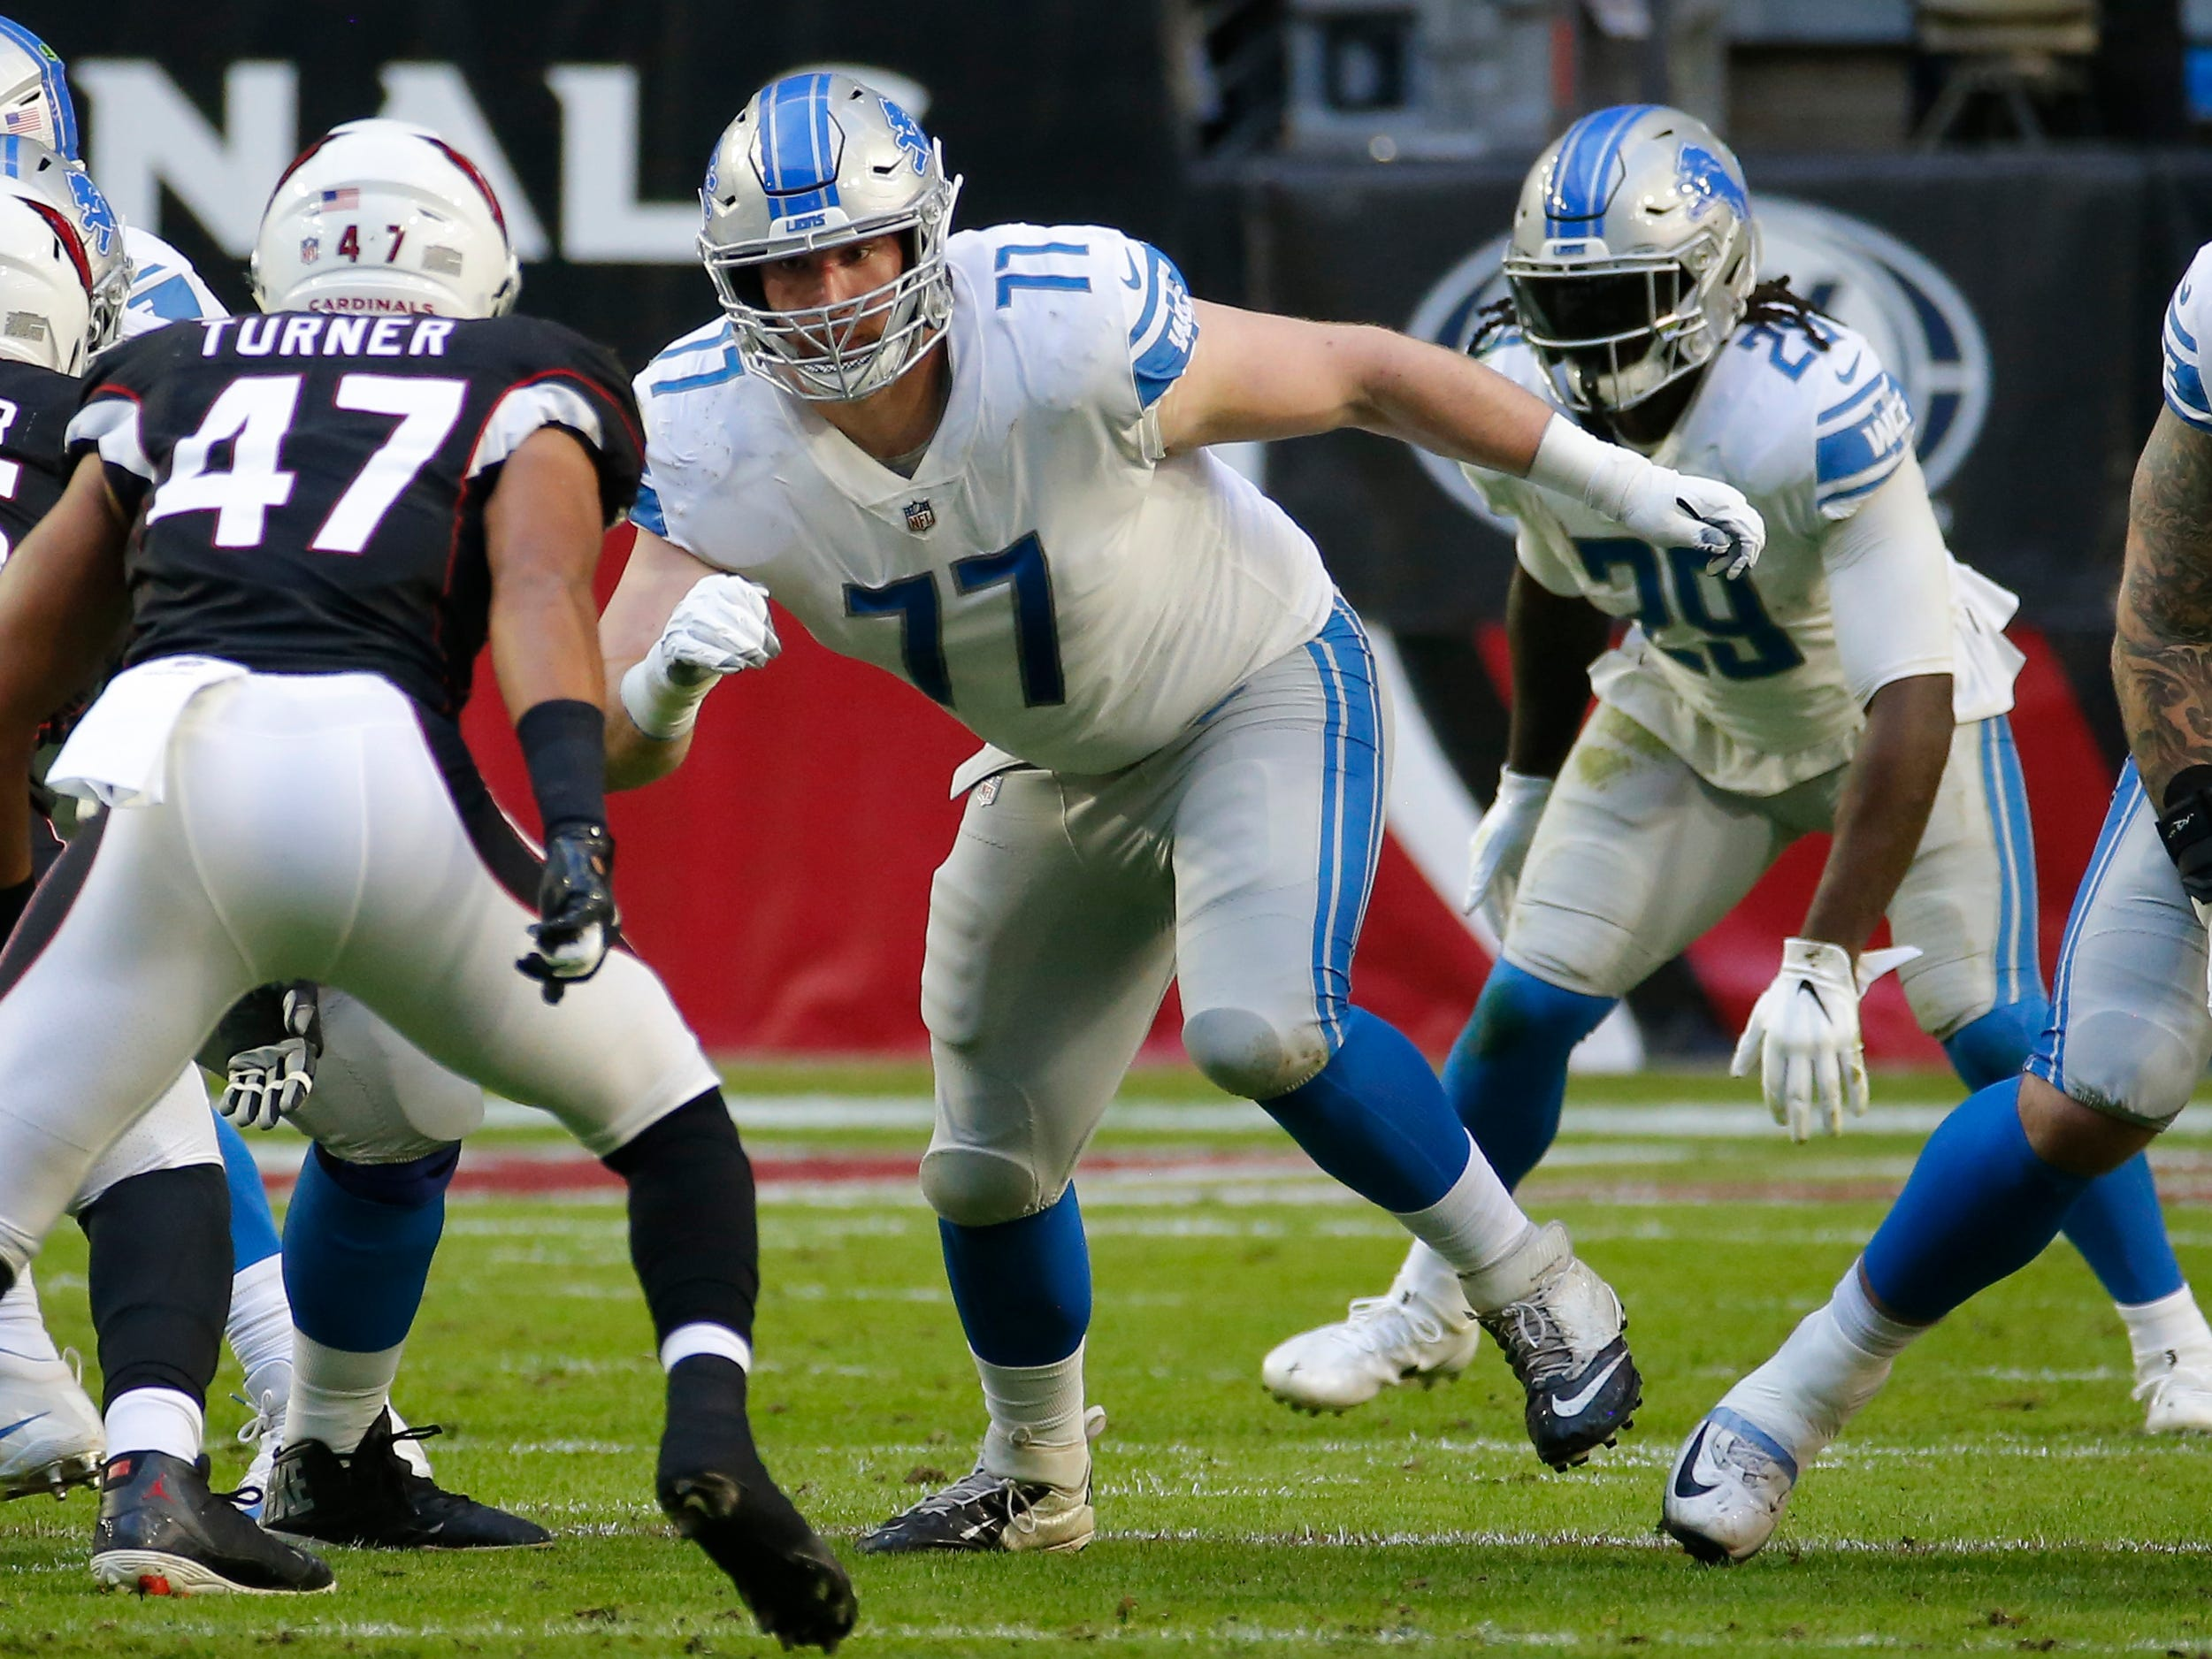 OG Frank Ragnow: Ragnow's rookie season was full of predictable ups and downs. He had a rough go of it as a pass protector early in the year, but settled down in the second half of the year, outside of a disastrous outing against Aaron Donald. The Lions also showed a willingness to run behind the rookie in short-yardage situations and more often than not, he was up to the task. Grade: C+